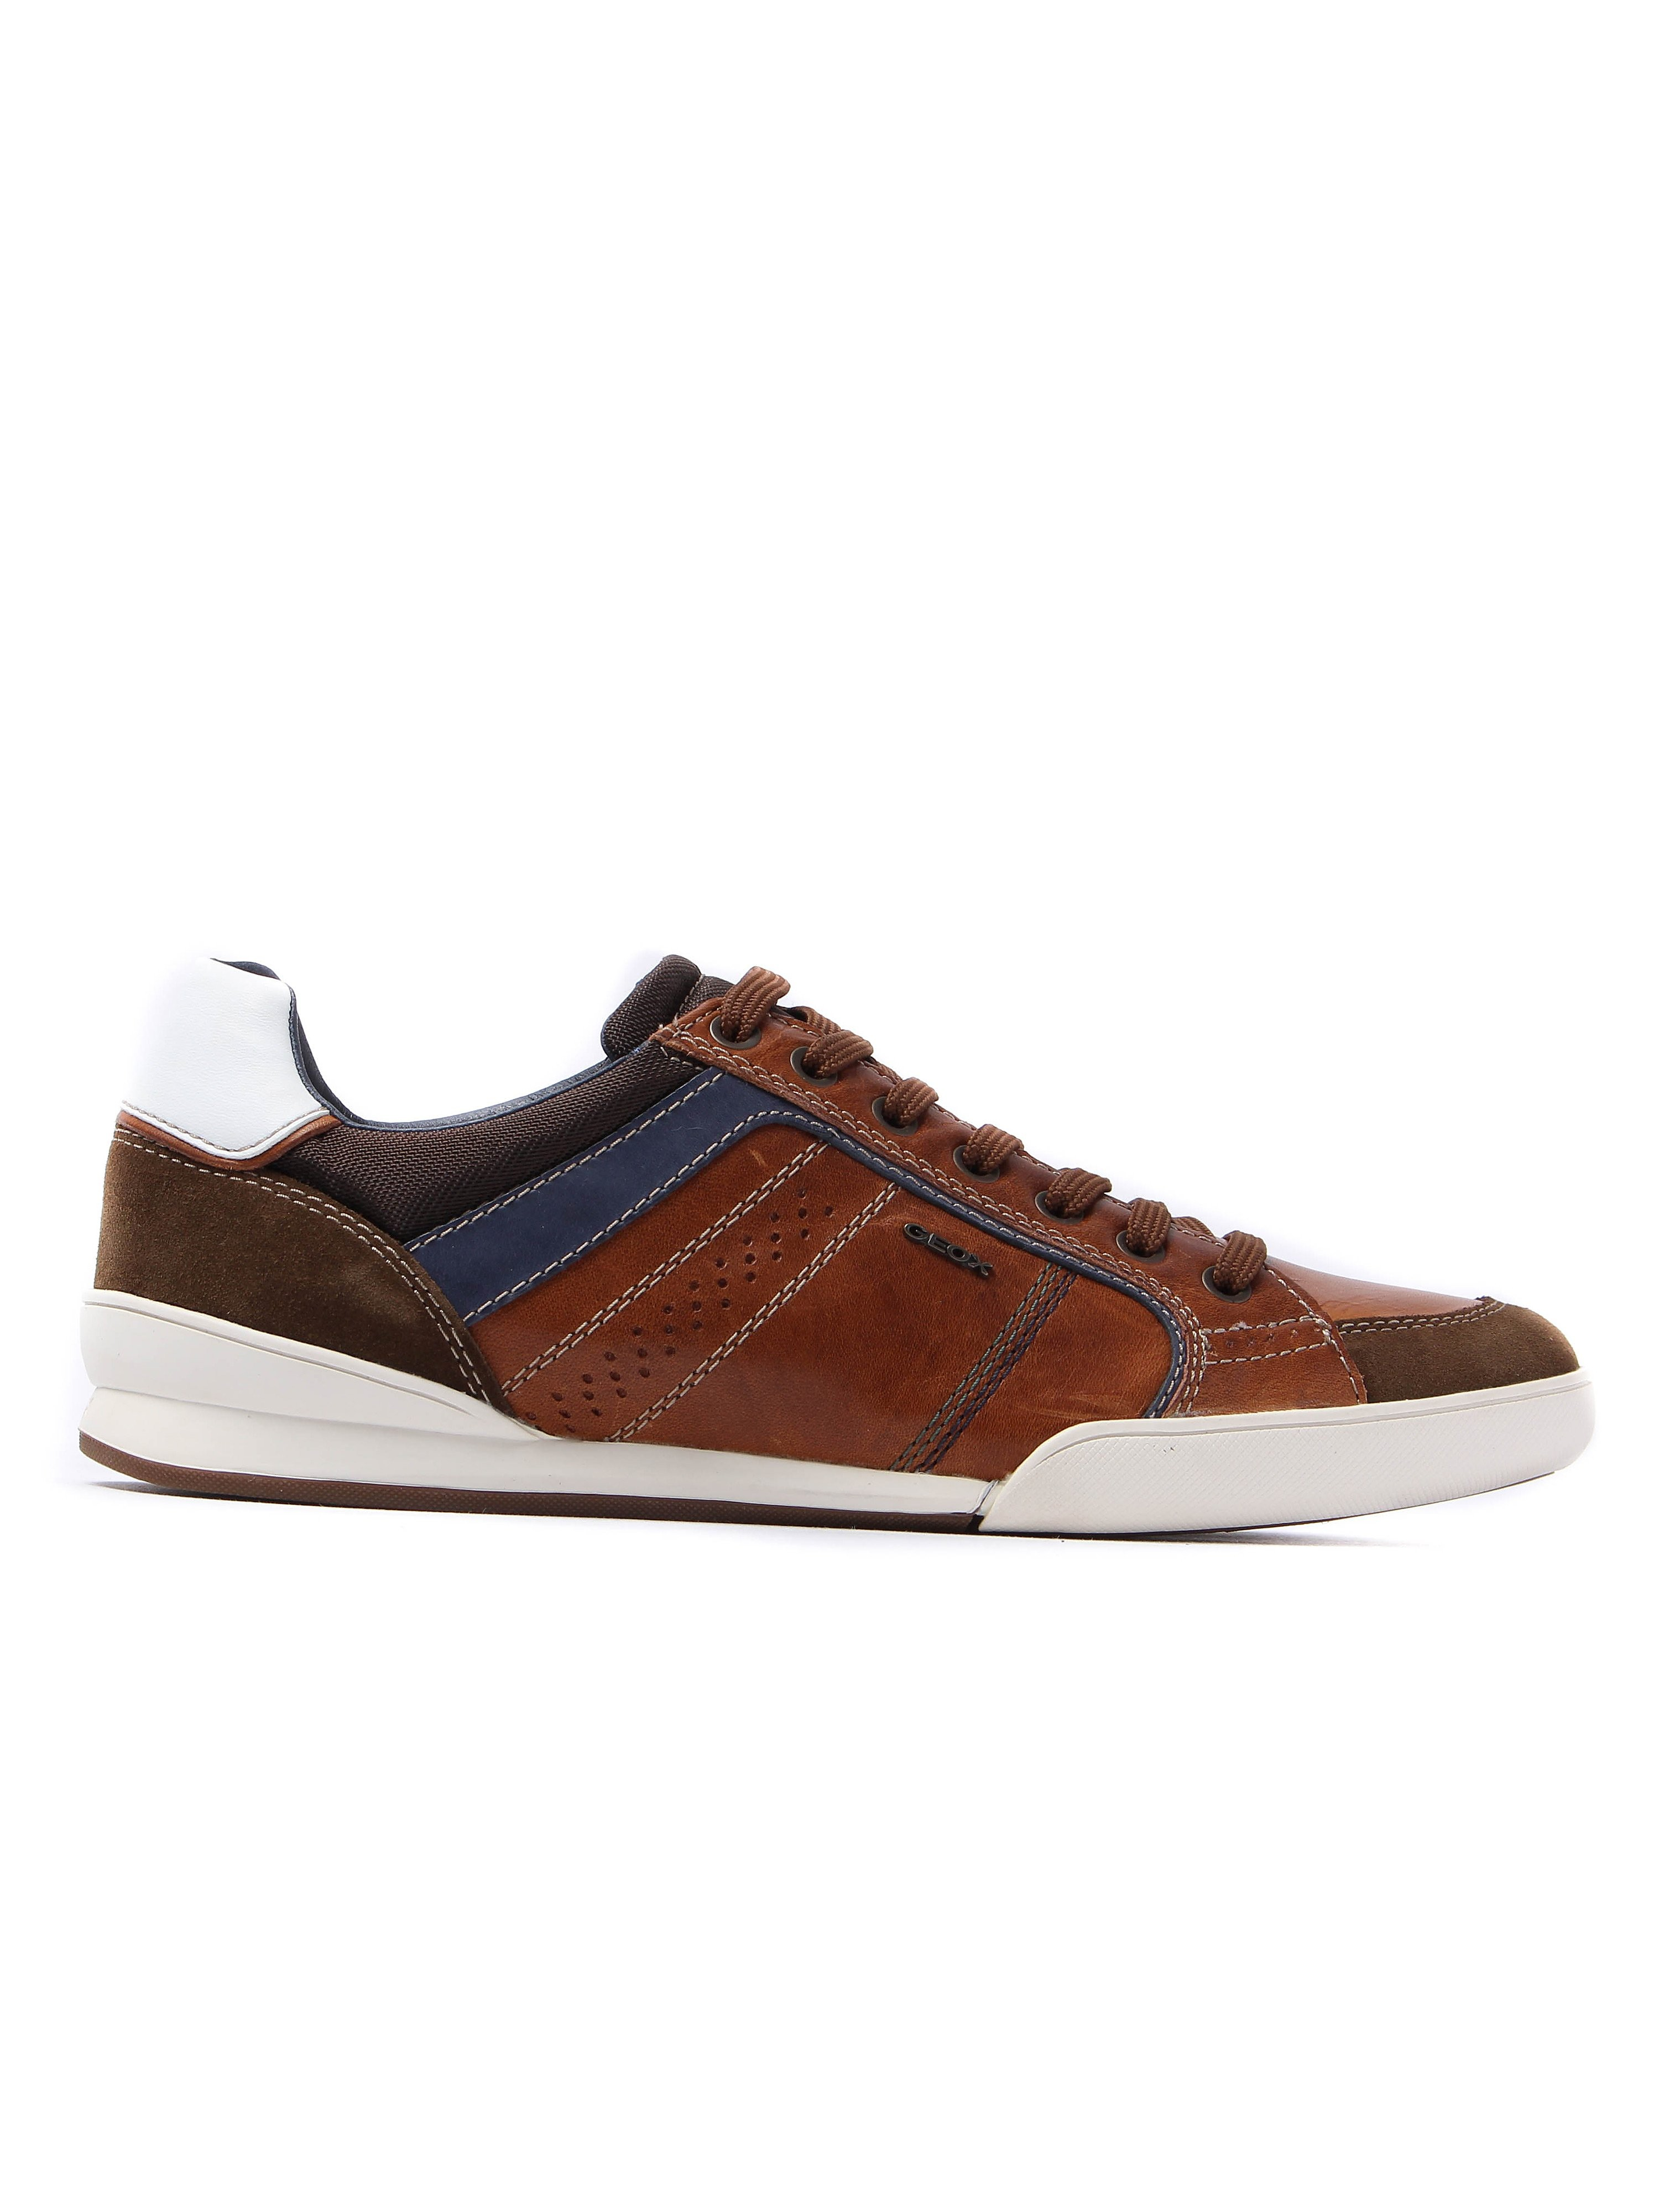 Geox Men's Kristof Pull Up Leather Trainers - Brown